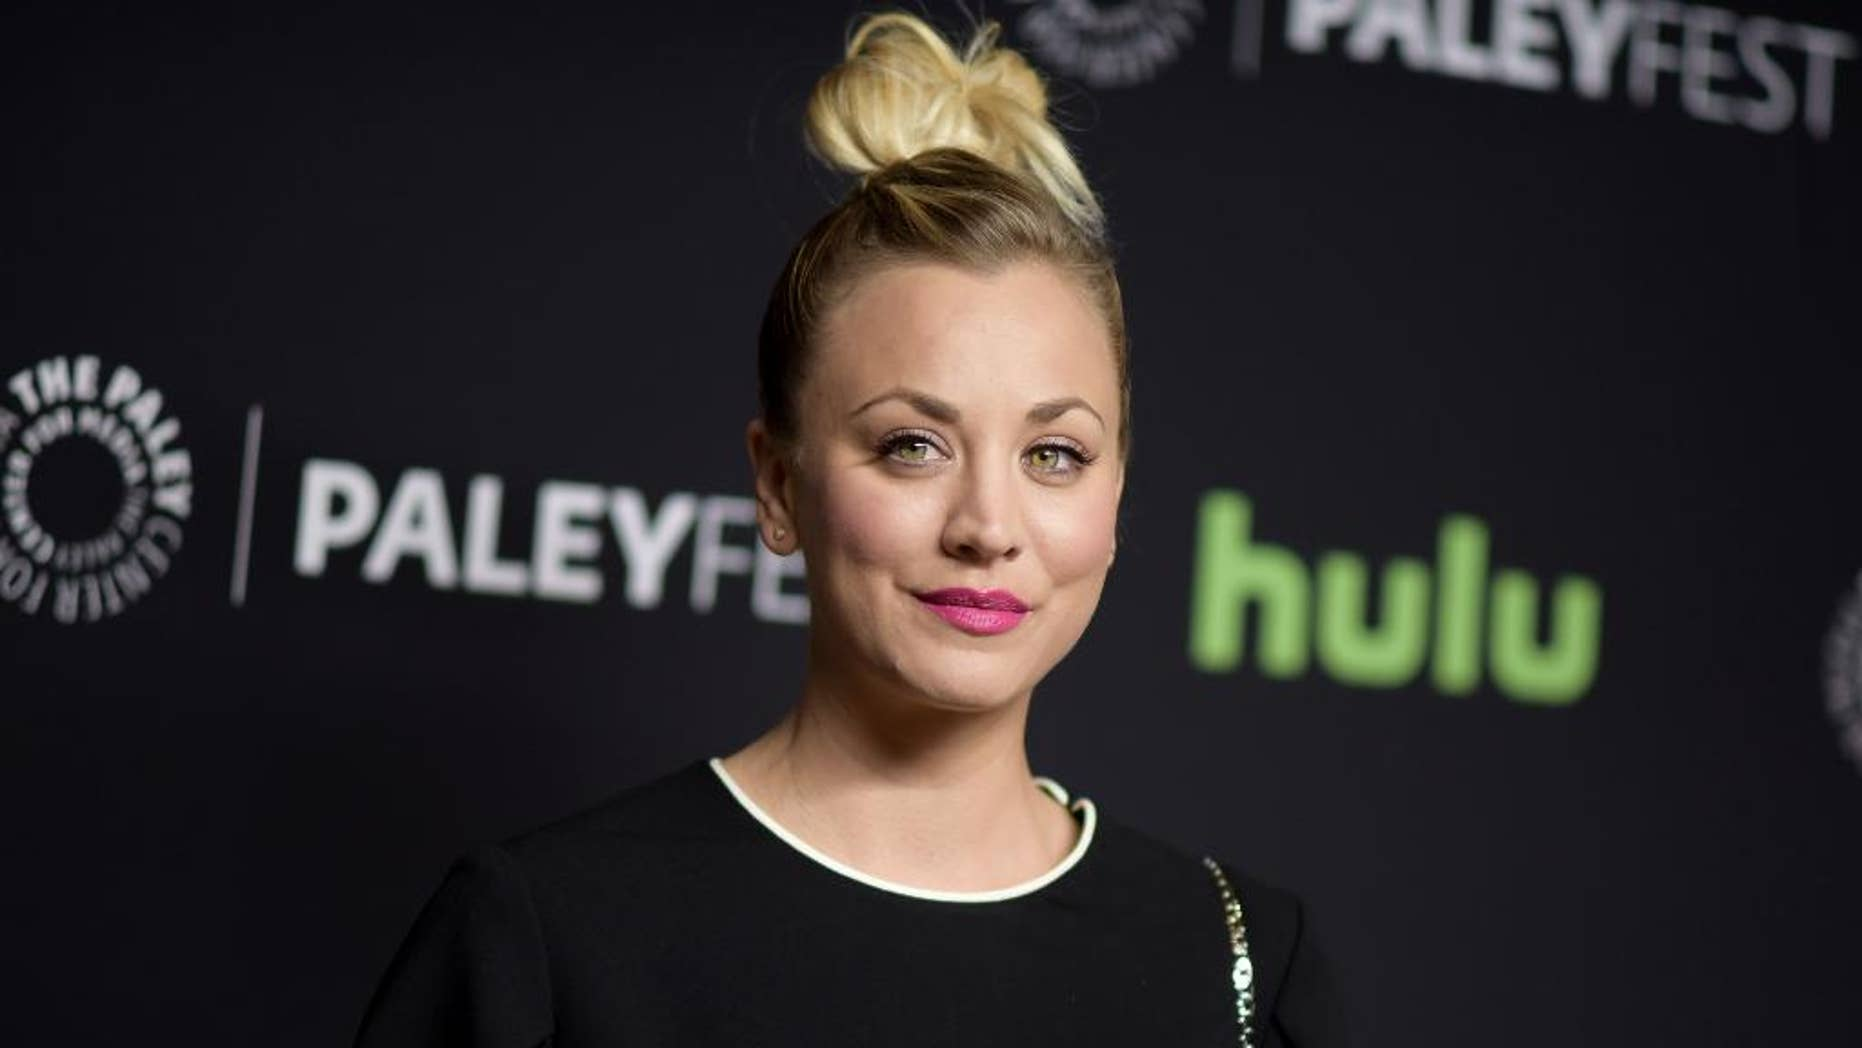 """FILE - In this March 16, 2016, file photo, Kaley Cuoco attends the 33rd Annual Paleyfest: """"The Big Bang Theory"""" held at the Dolby Theatre in Los Angeles. Cuoco has apologized for posting a photo on July 4, 2016, of her dogs sitting on an American flag. (Photo by Richard Shotwell/Invision/AP, File)"""